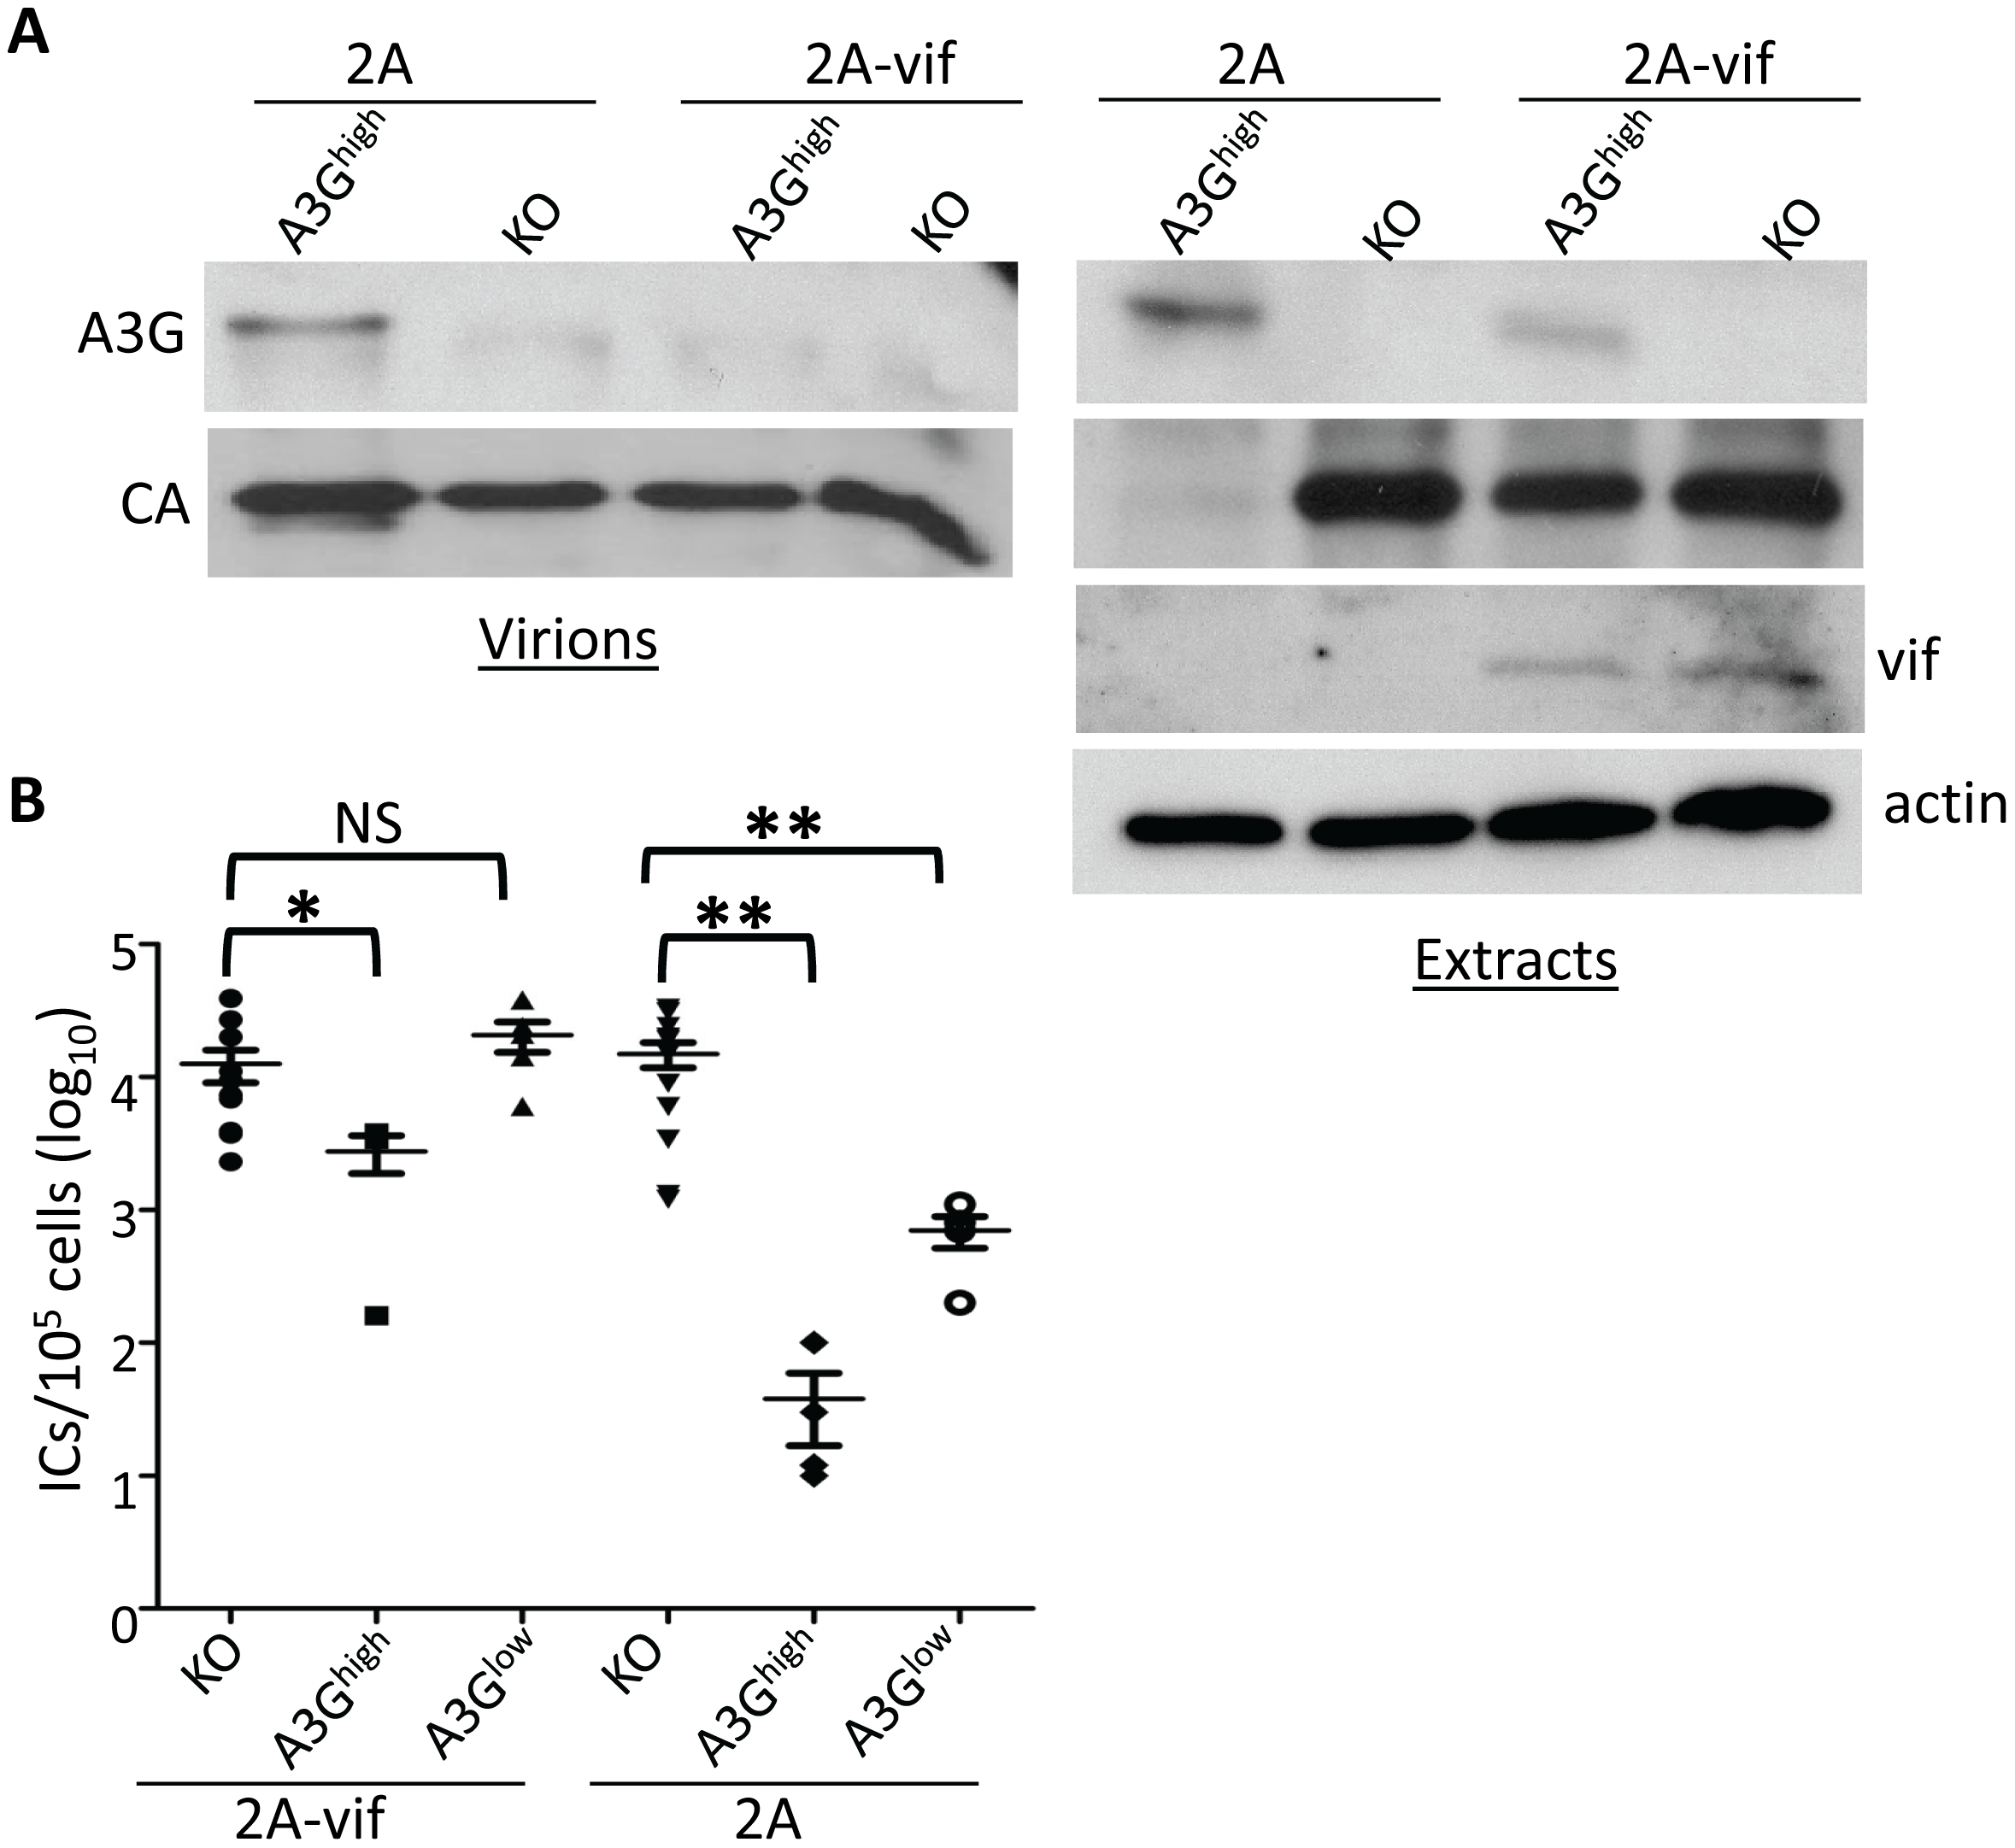 Vif counteracts A3G in transgenic mice.